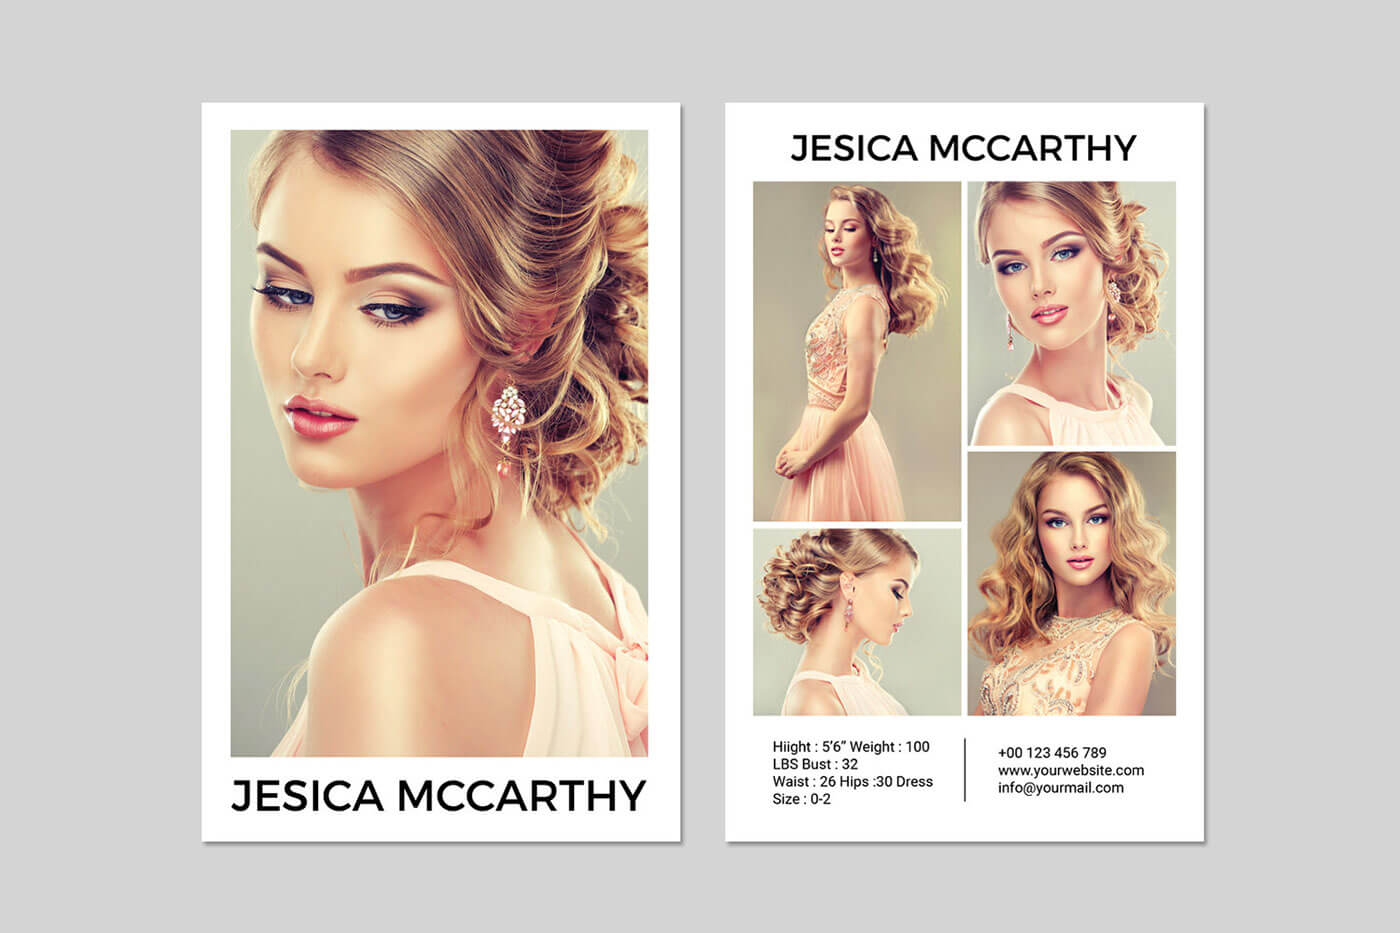 031 Model Comp Card Template Outstanding Ideas Psd Free Throughout Comp Card Template Psd